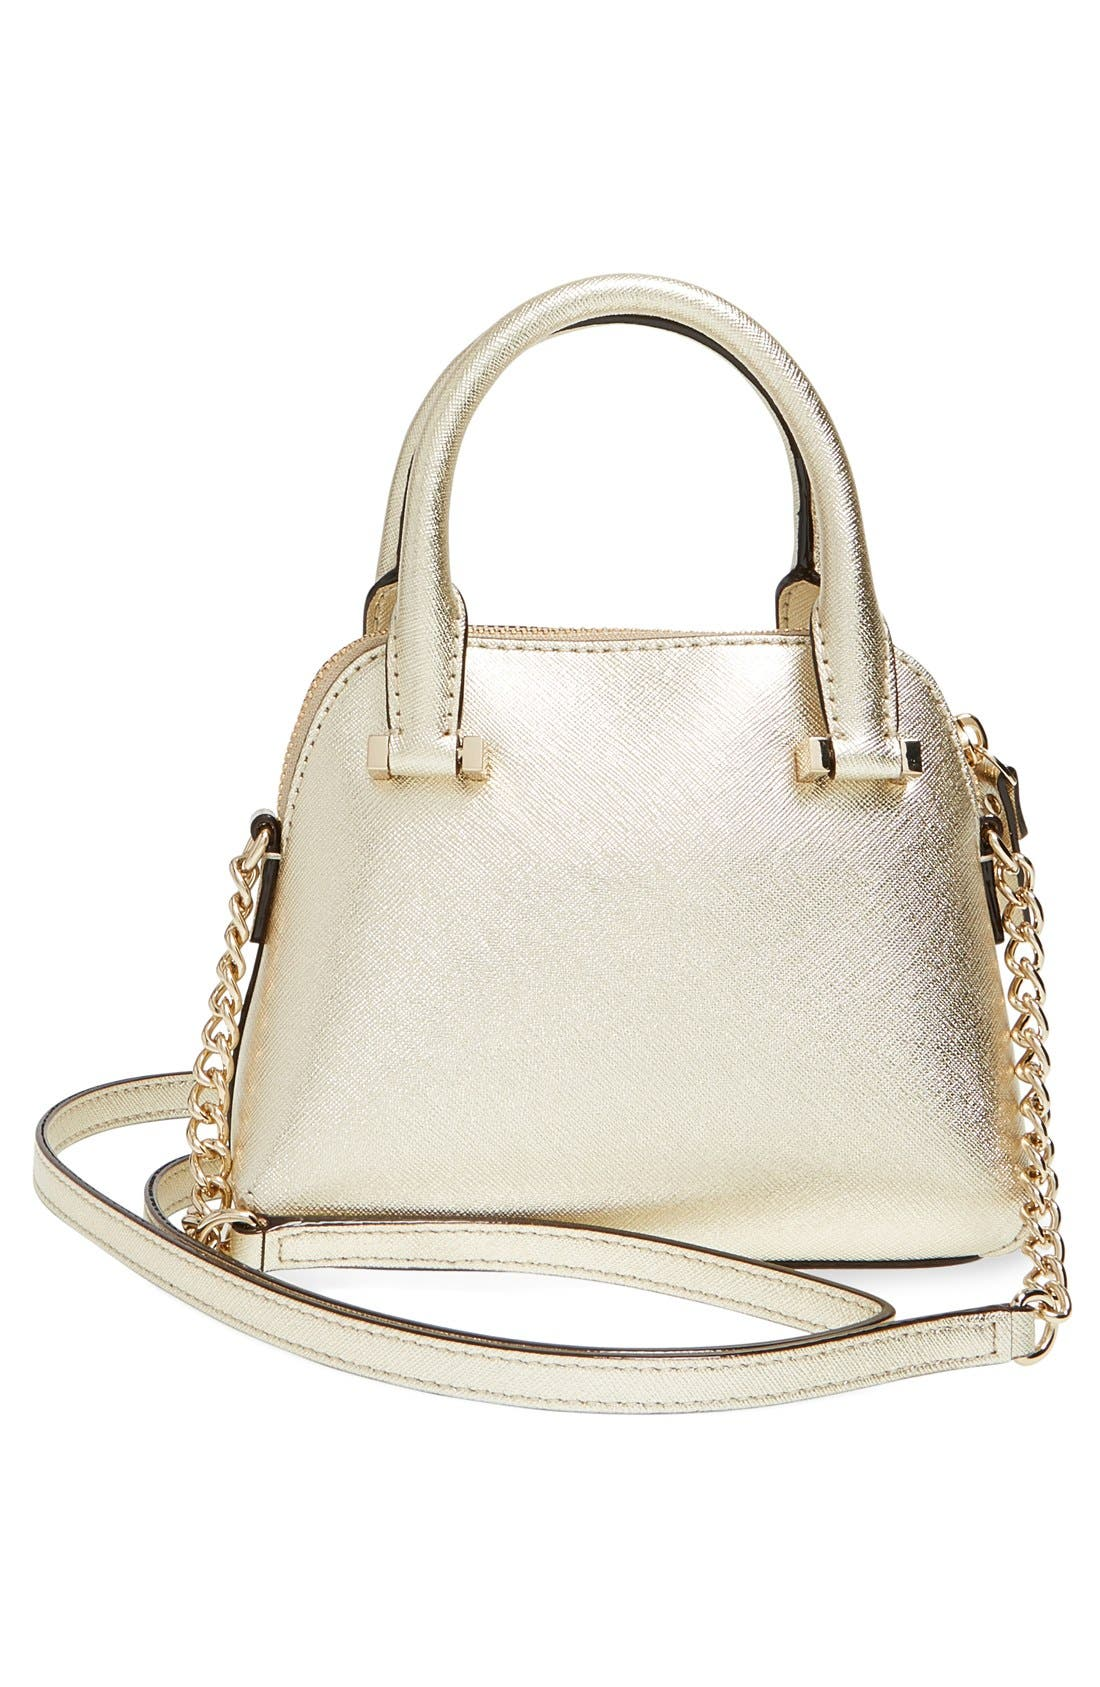 Alternate Image 3  - kate spade new york 'cedar street - mini maise' metallic leather crossbody bag